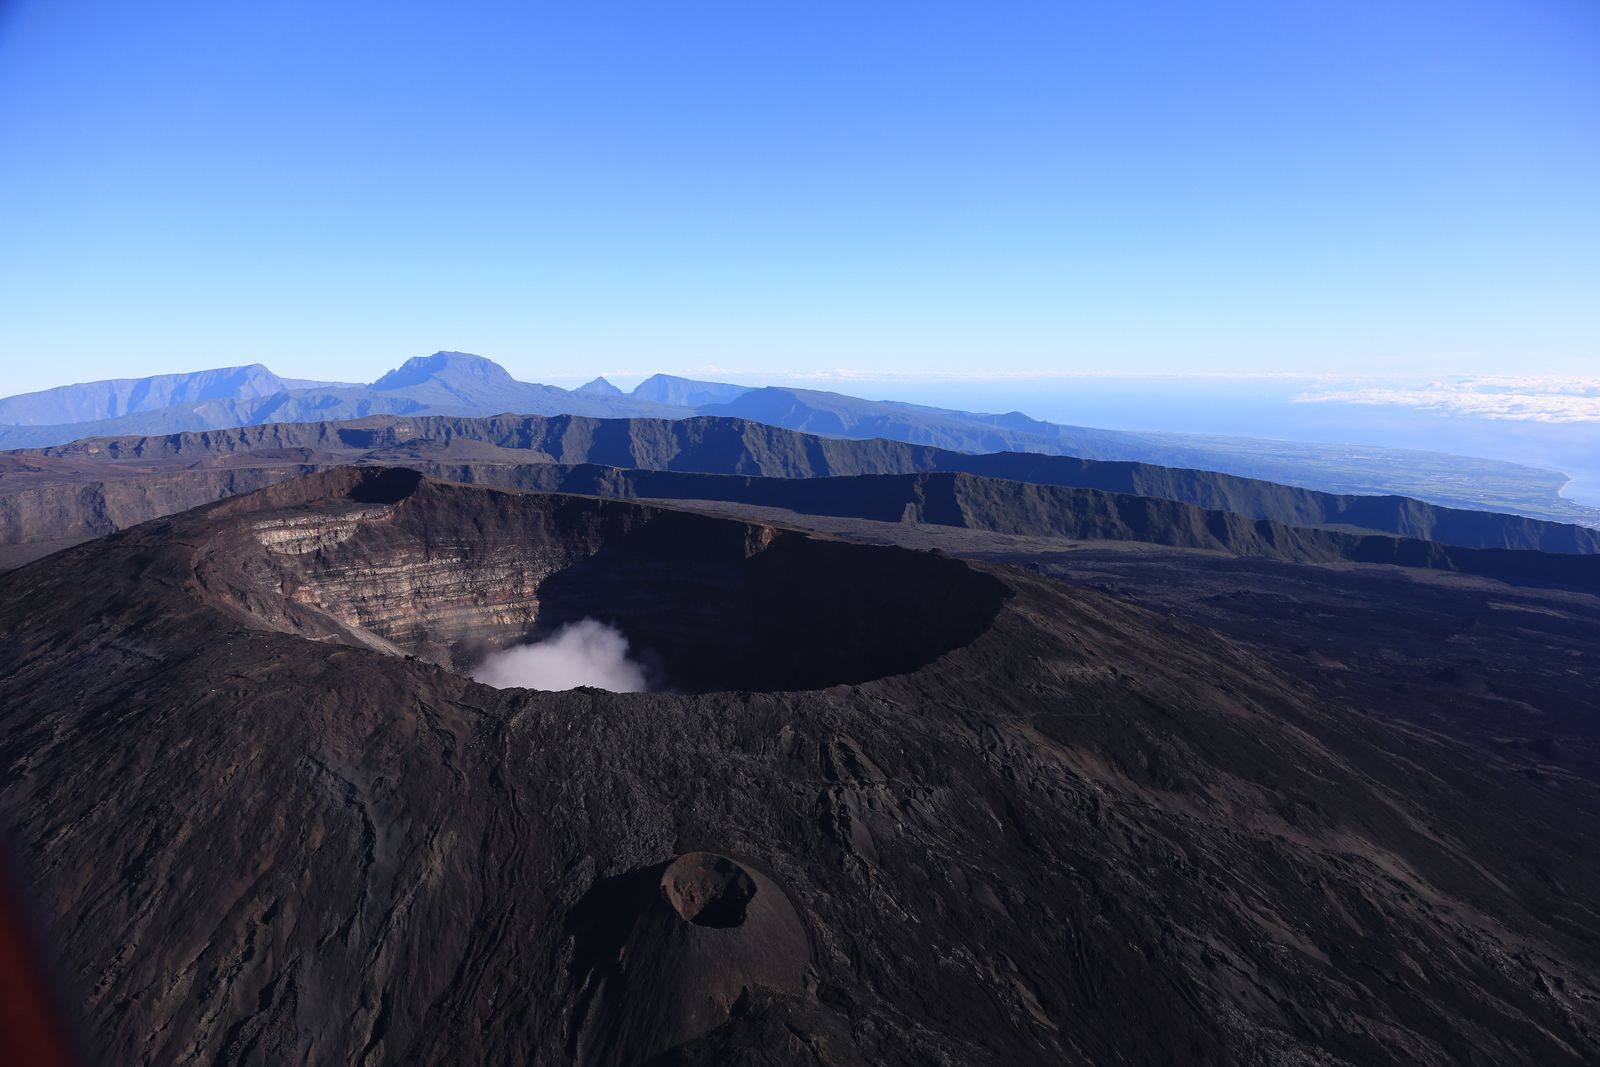 """LaRéunion - Piton de La Fournaise - east and northeast flanks of the Dolomieu, with a cloud """"trapped"""" in the crater - photo archives © Bernard Duyck"""